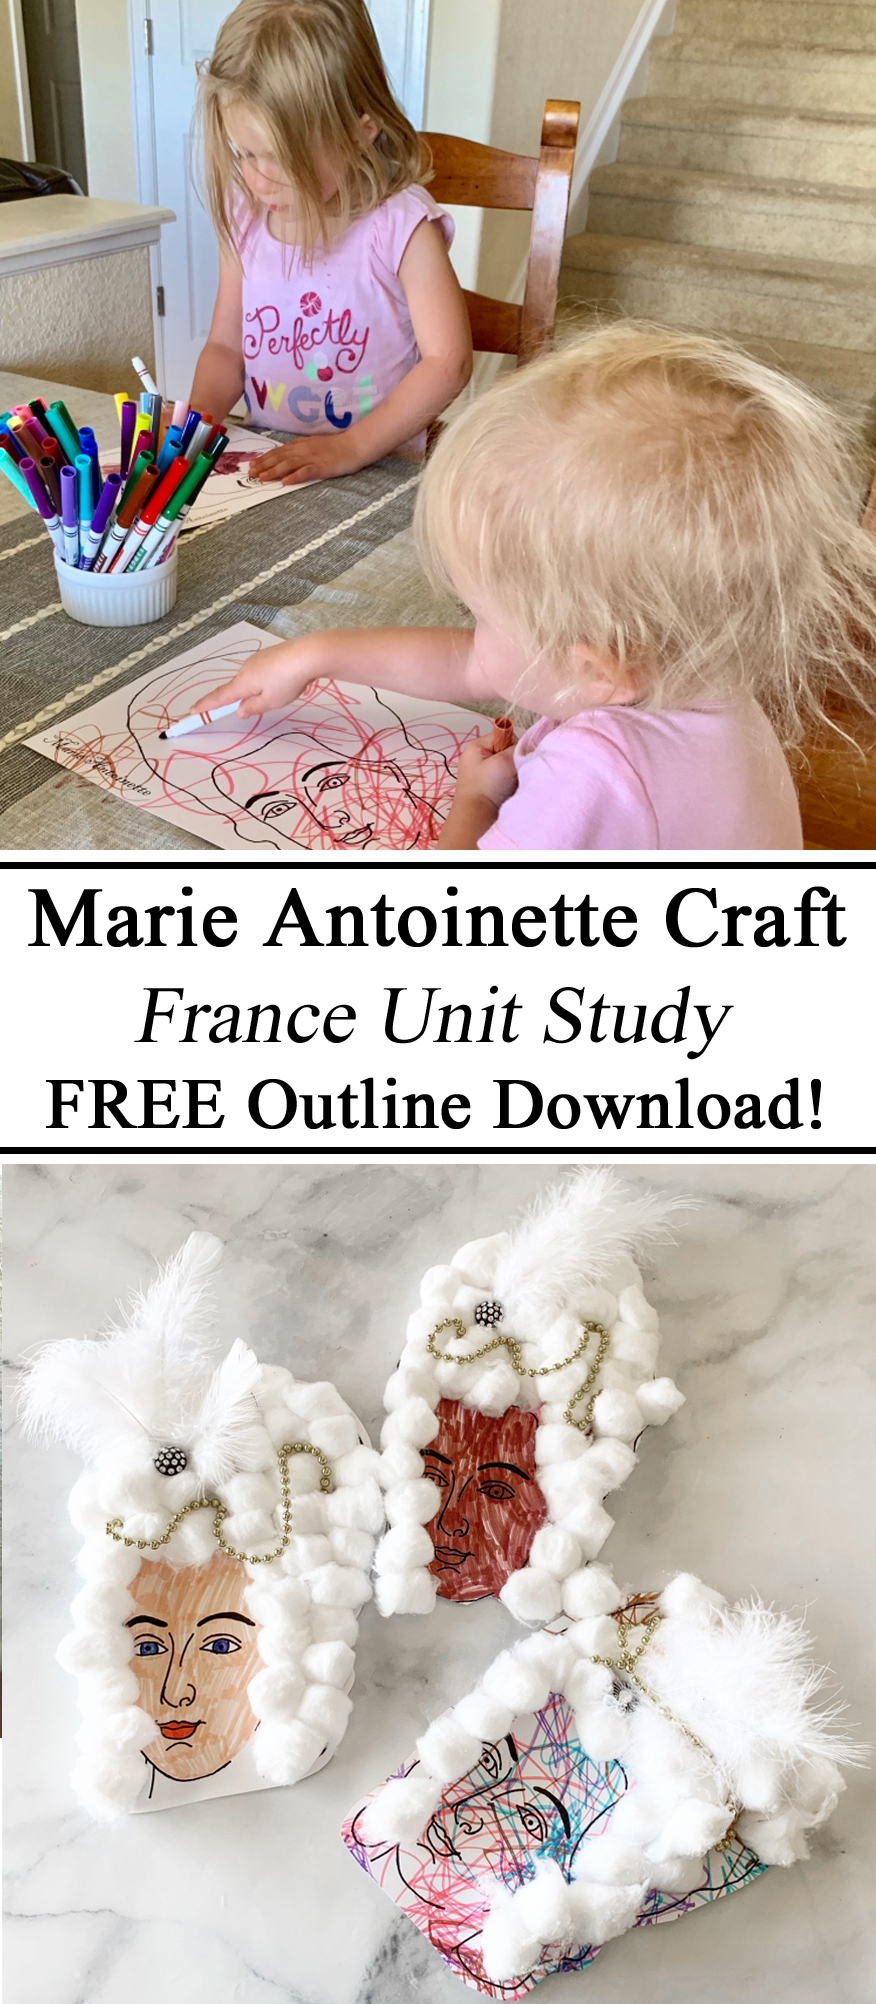 Homeschooling, Homeschool, Marie Antoinette, Crafts, Arts, France Unit Study, FREE Printable, Download, Outline Bust, French Revolution, Unit Studies, STEM STEAM Activities for Kids, Preschool, Kindergarten, Pre-K, Early Childhood Education Years, Unschooling, Activities for Kids, Children, Montessori, Learning at Home, Educational